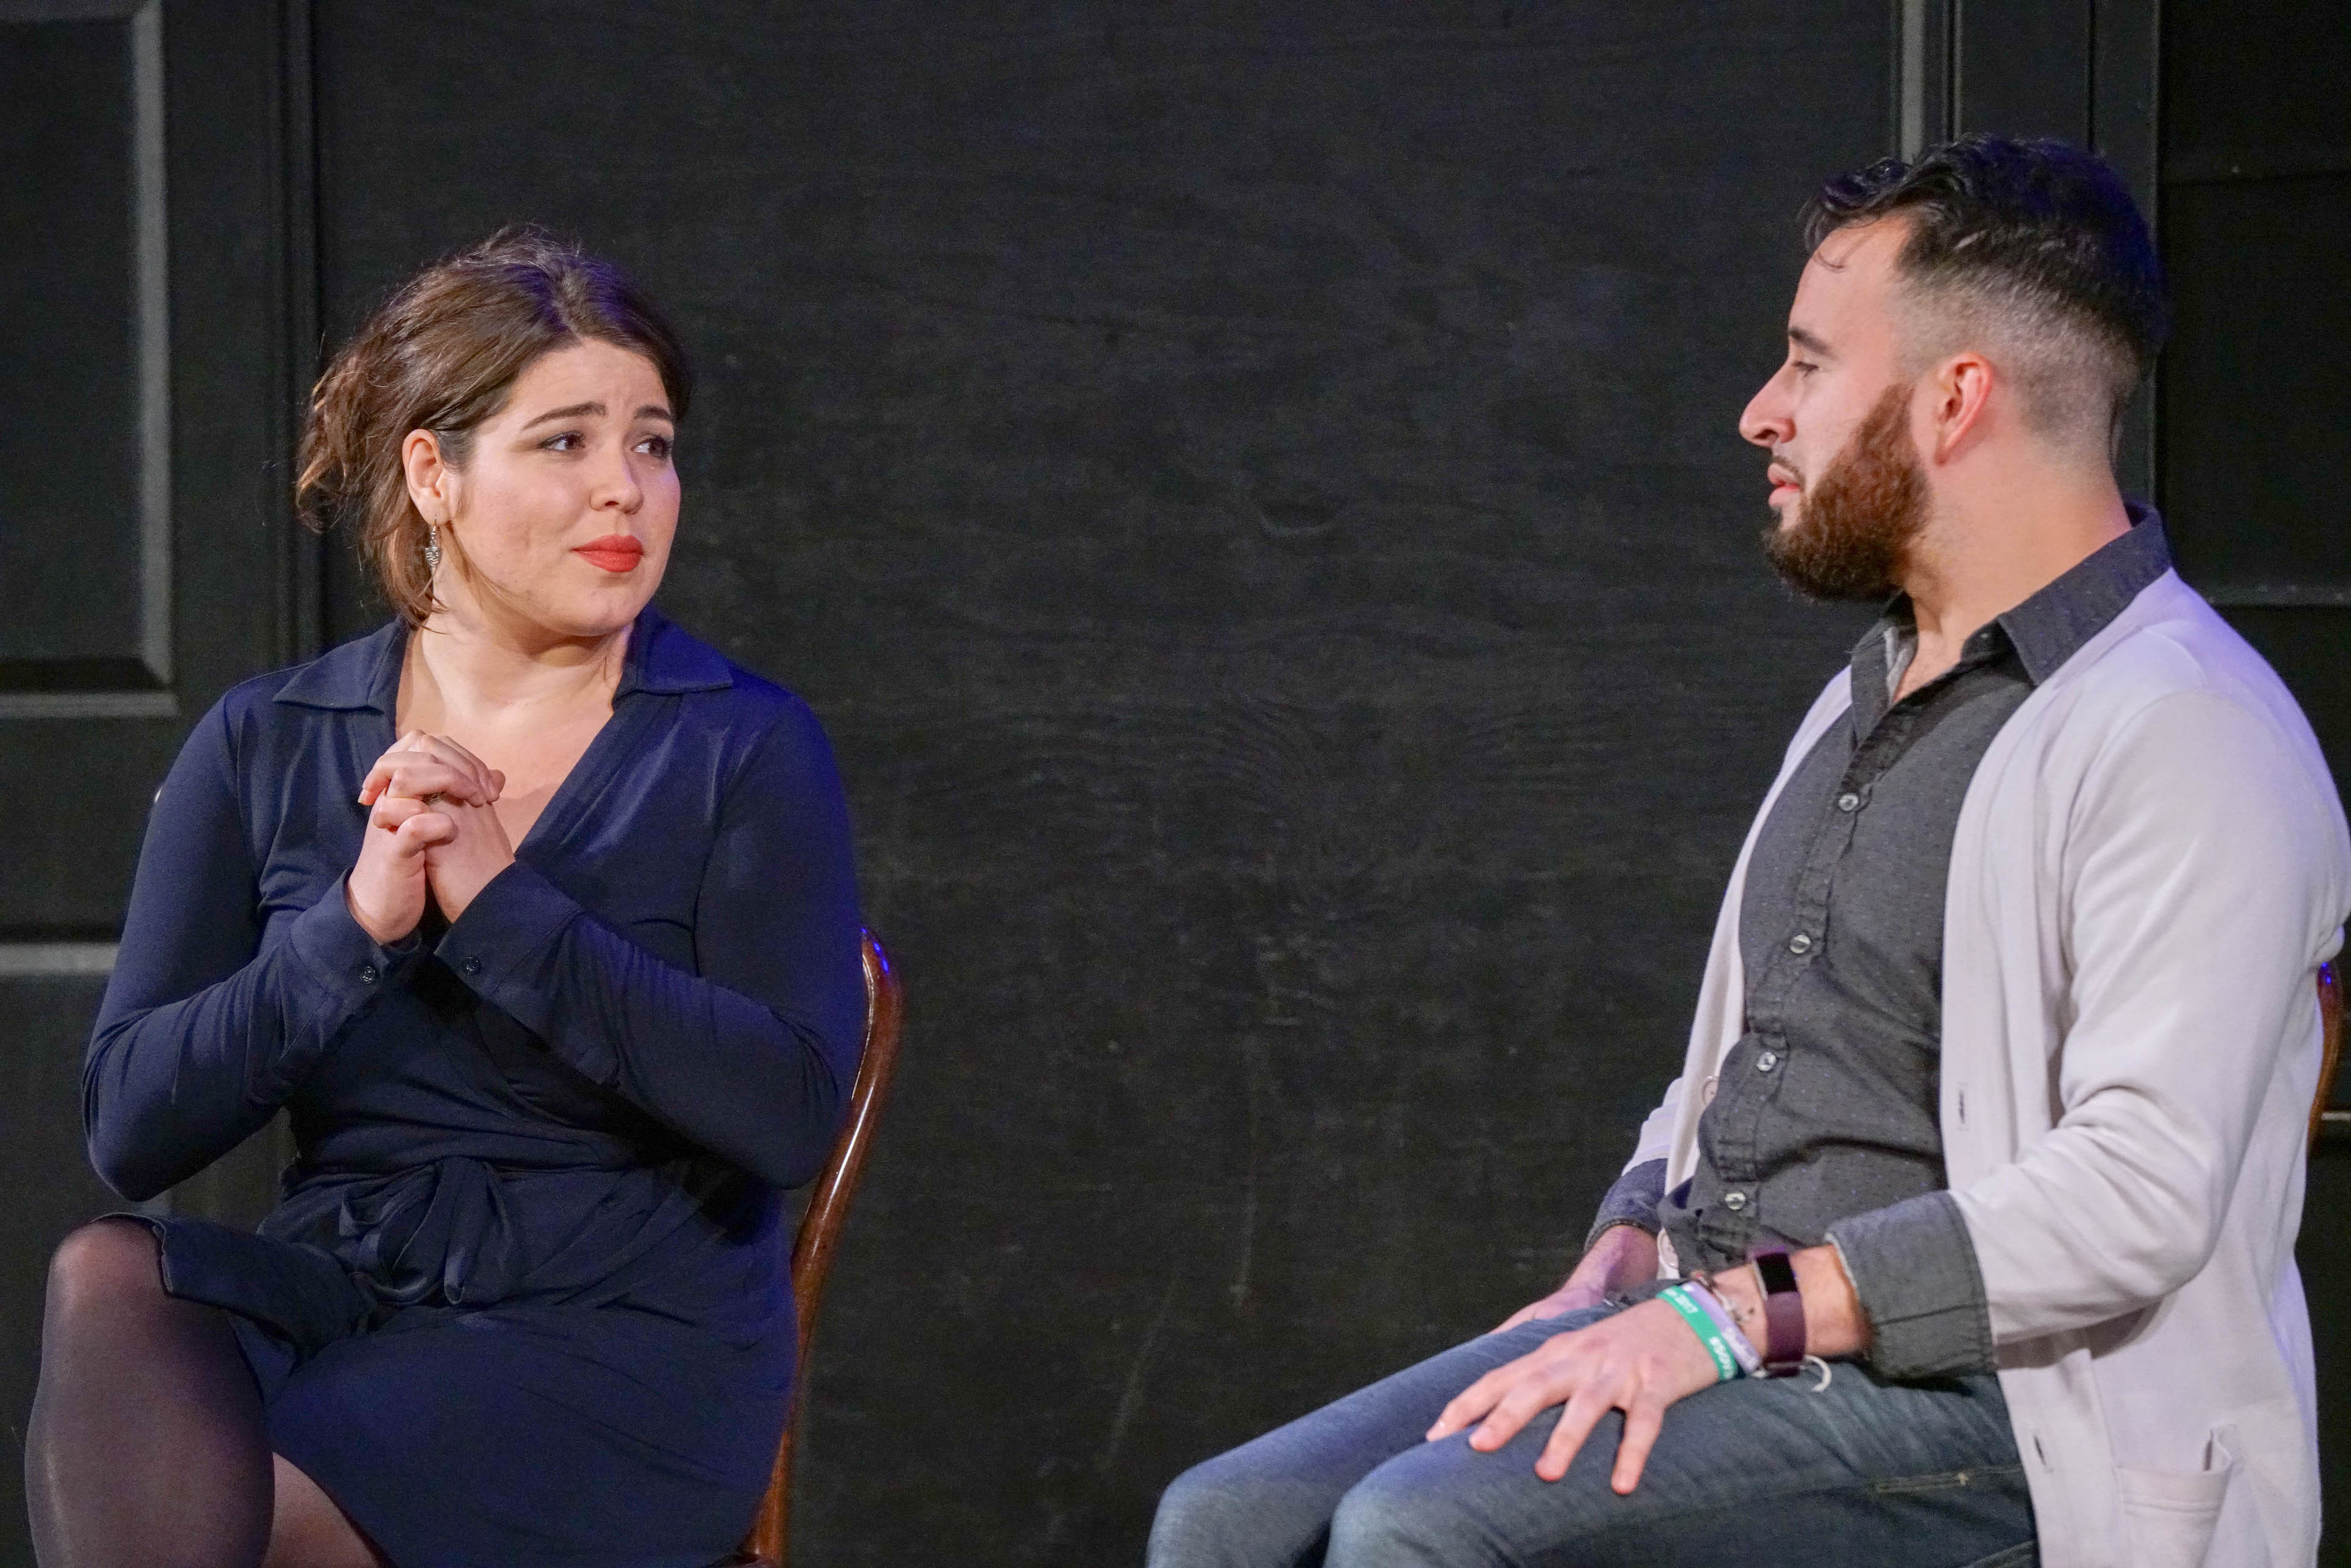 This is a medium-shot of the performers seated on-stage. Nicole looks at Devin with clasped hands, and Devin looks back with hands on lapBehind the performers is the black wall of the stage, with a part of a black door and a black, covered window visible in the frame.